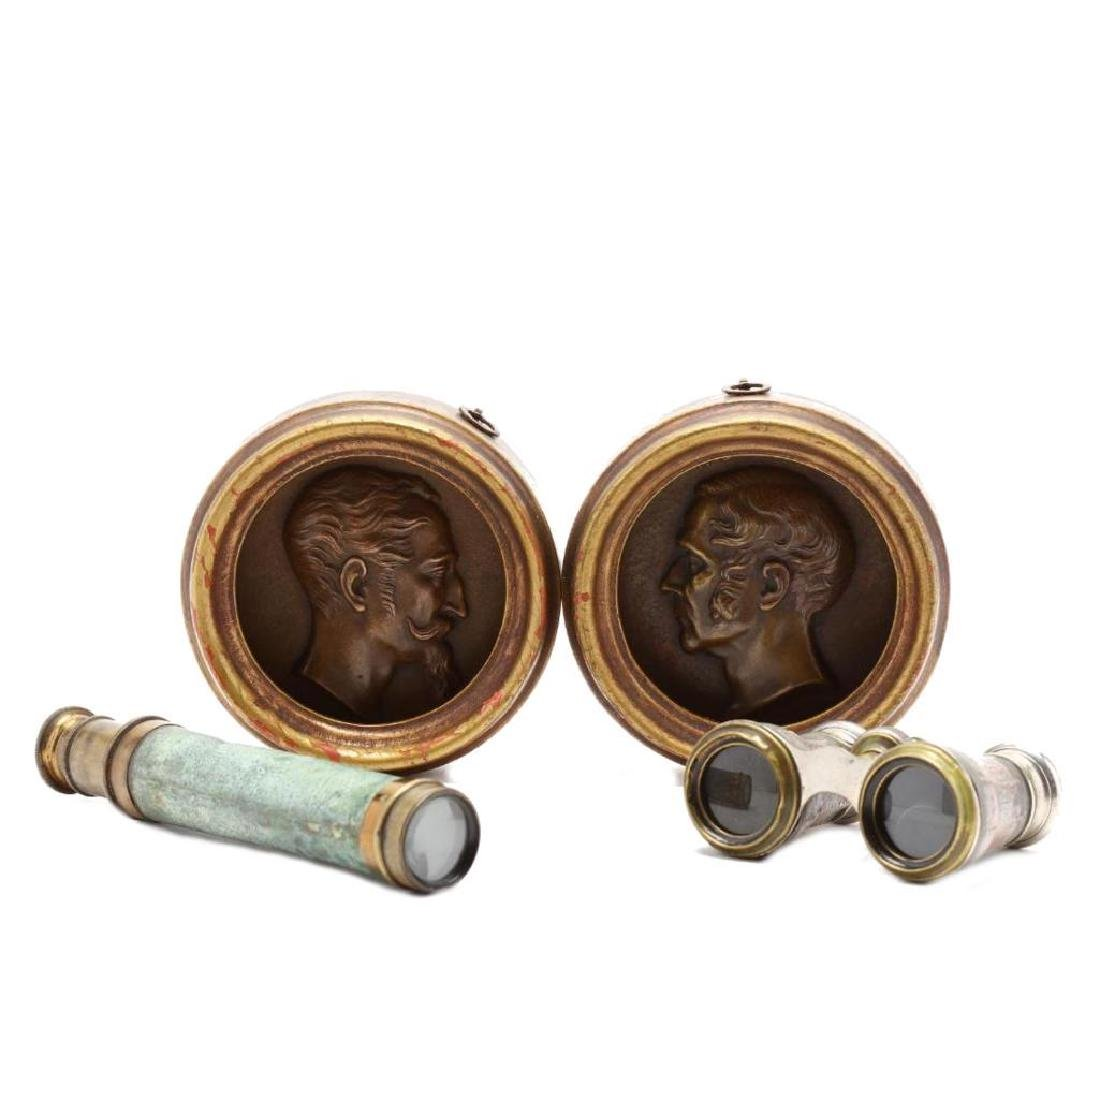 Antique Opera Glasses, Telescope and Plaques